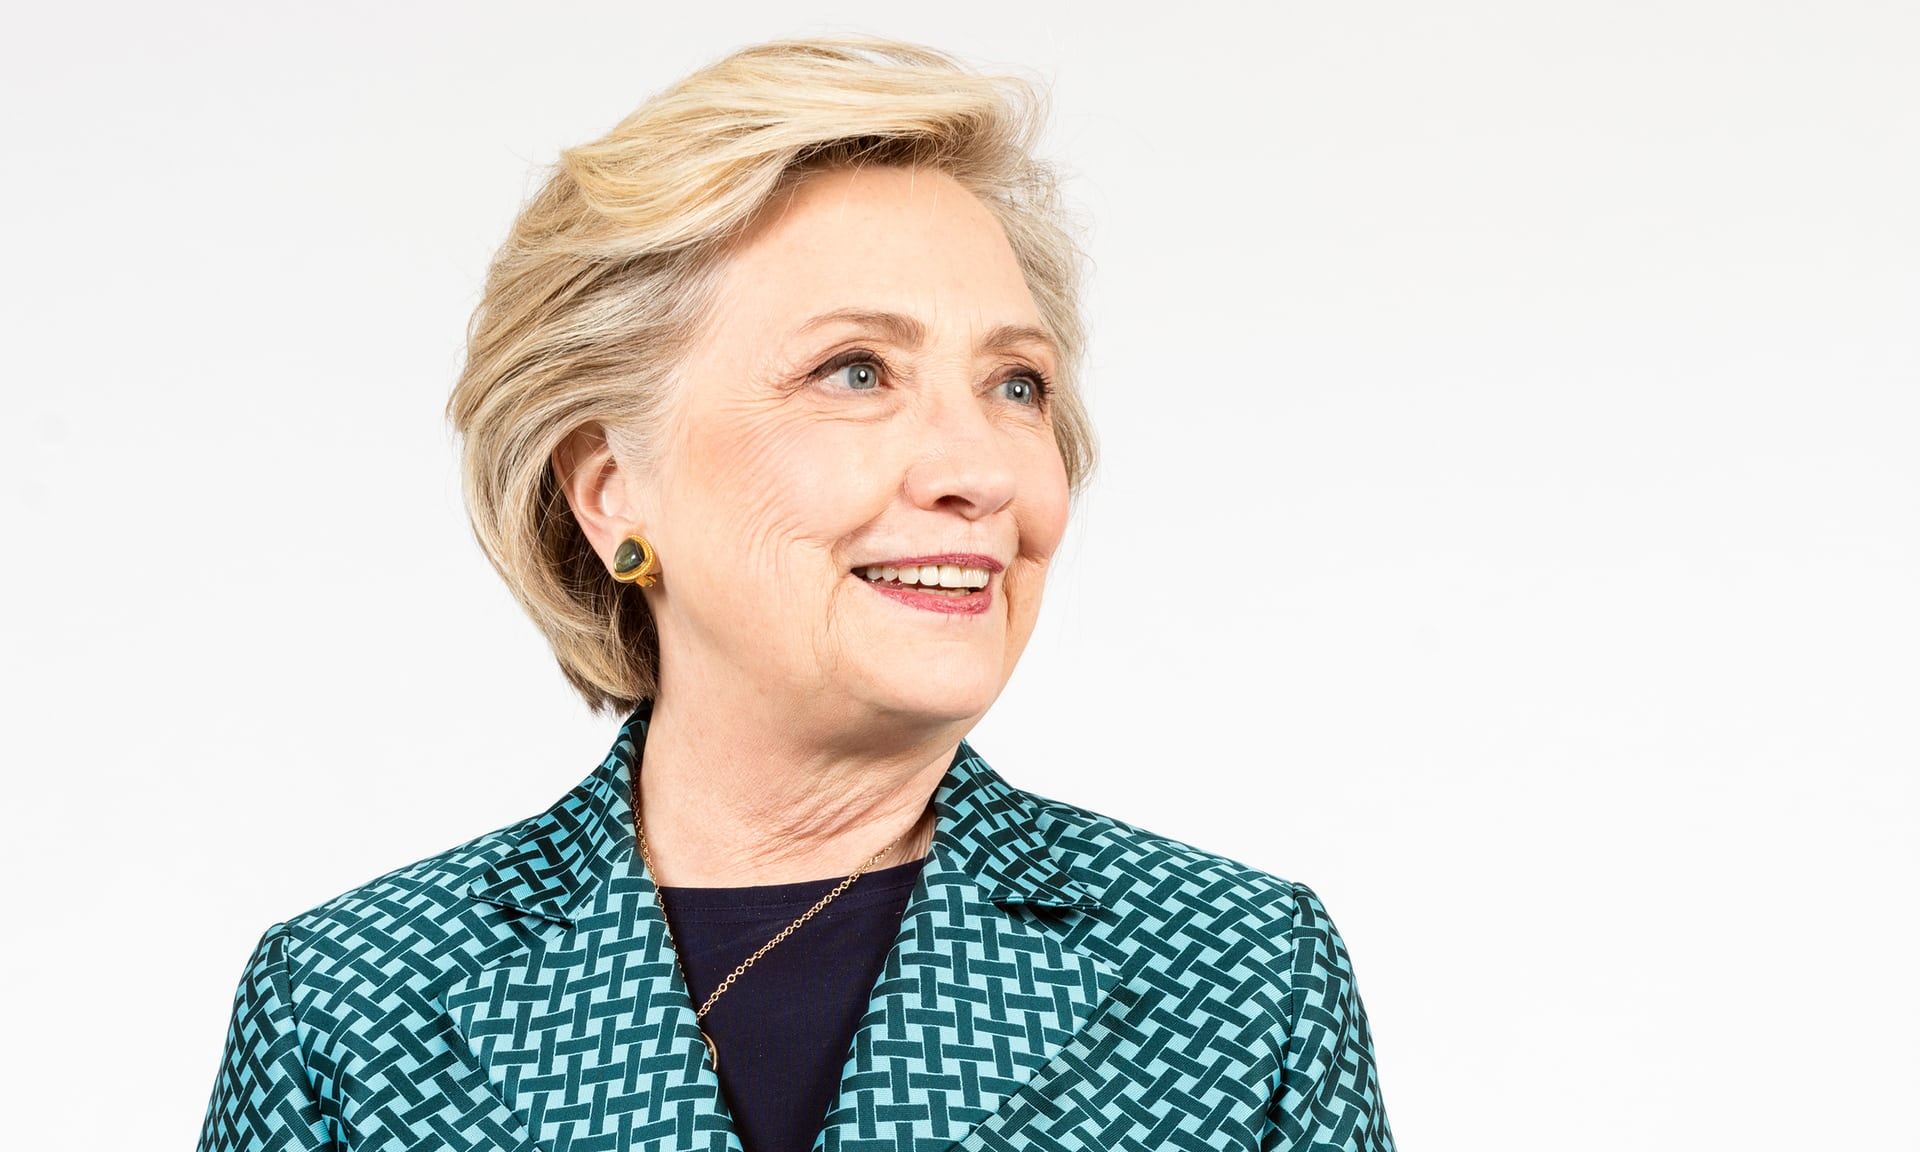 Americans cannot believe a single thing that comes out of Hillary Clinton's mouth